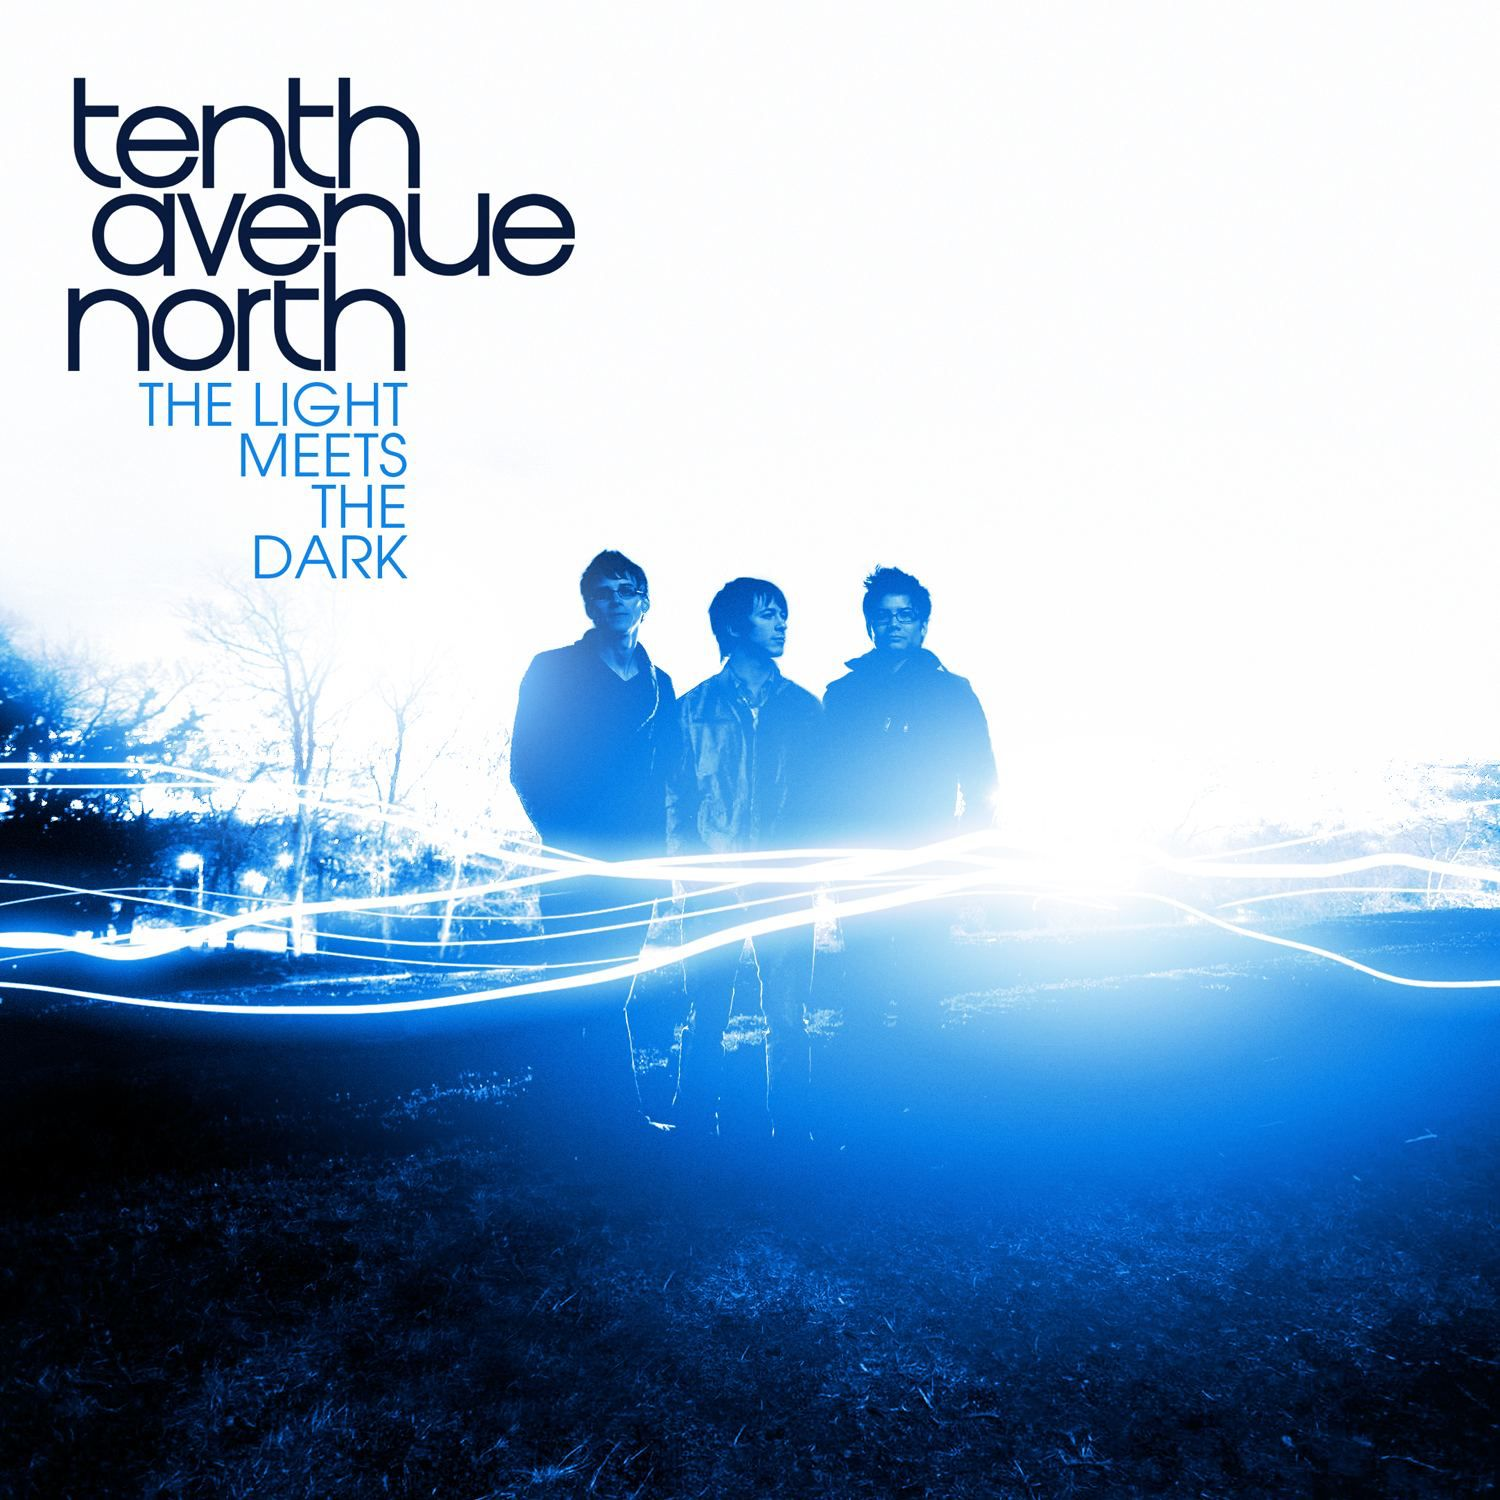 I'm listening to Strong Enough To Save by Tenth Avenue